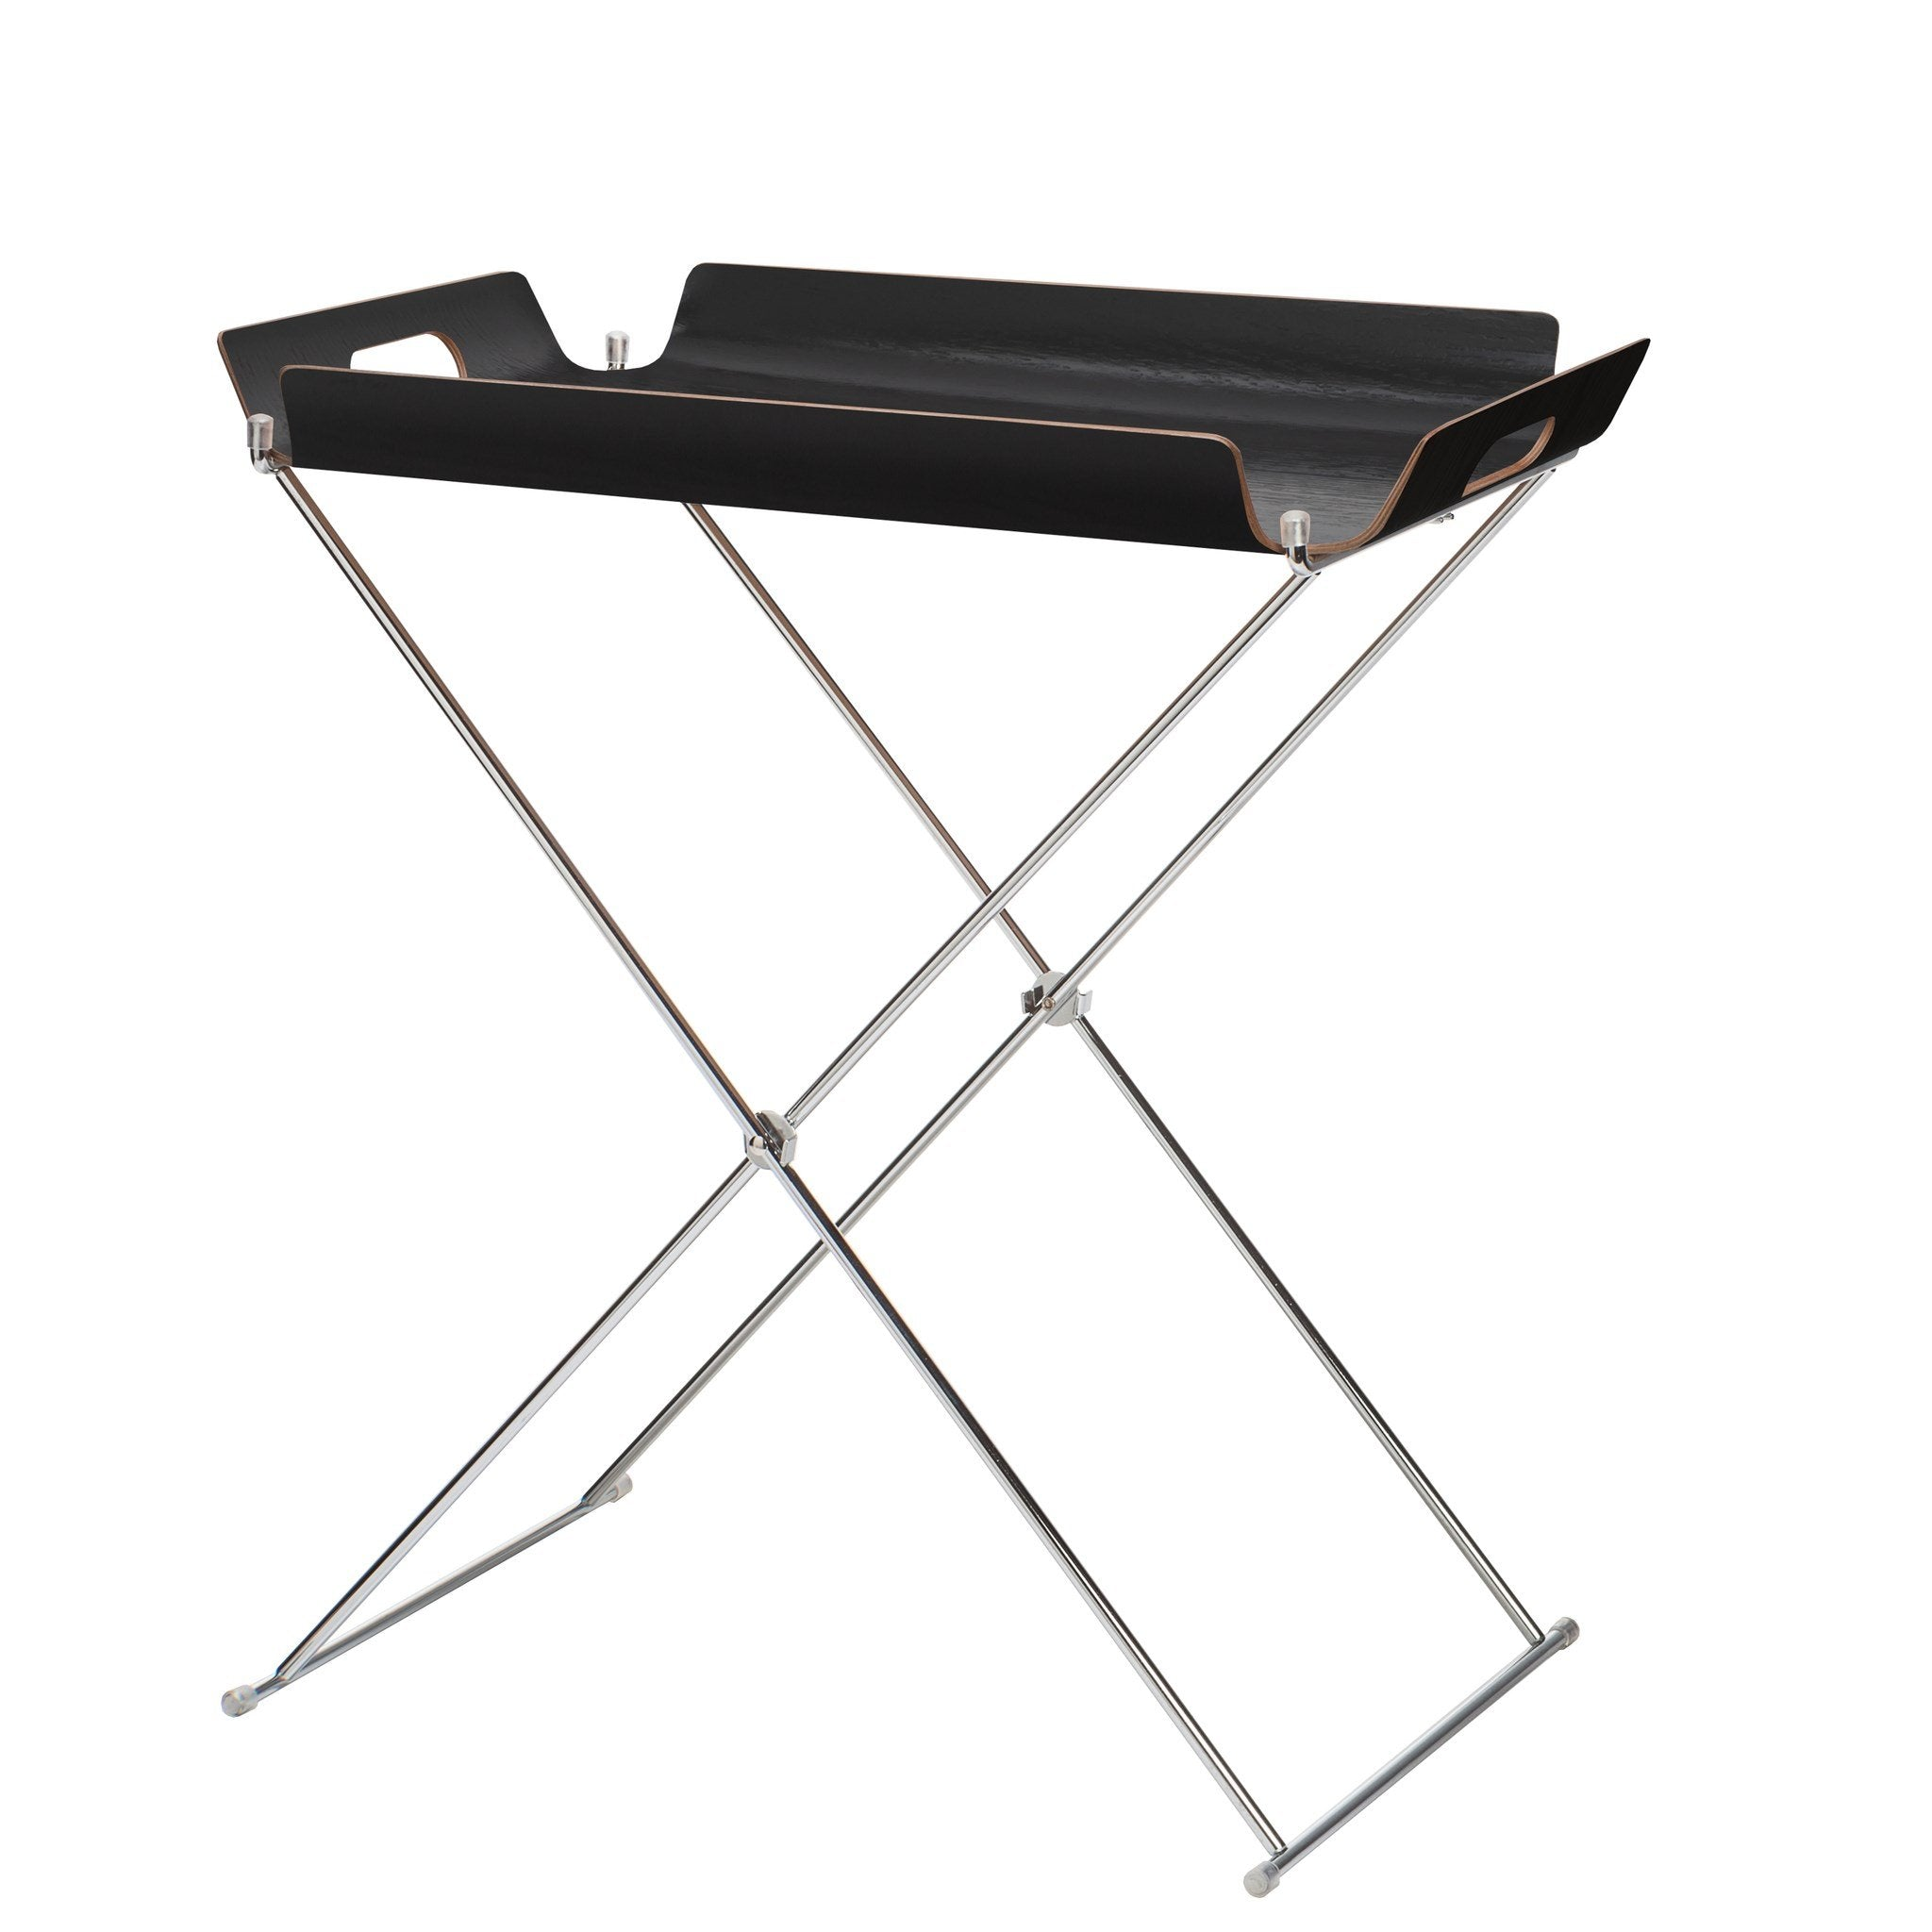 2 in 1 Folding Tray Table